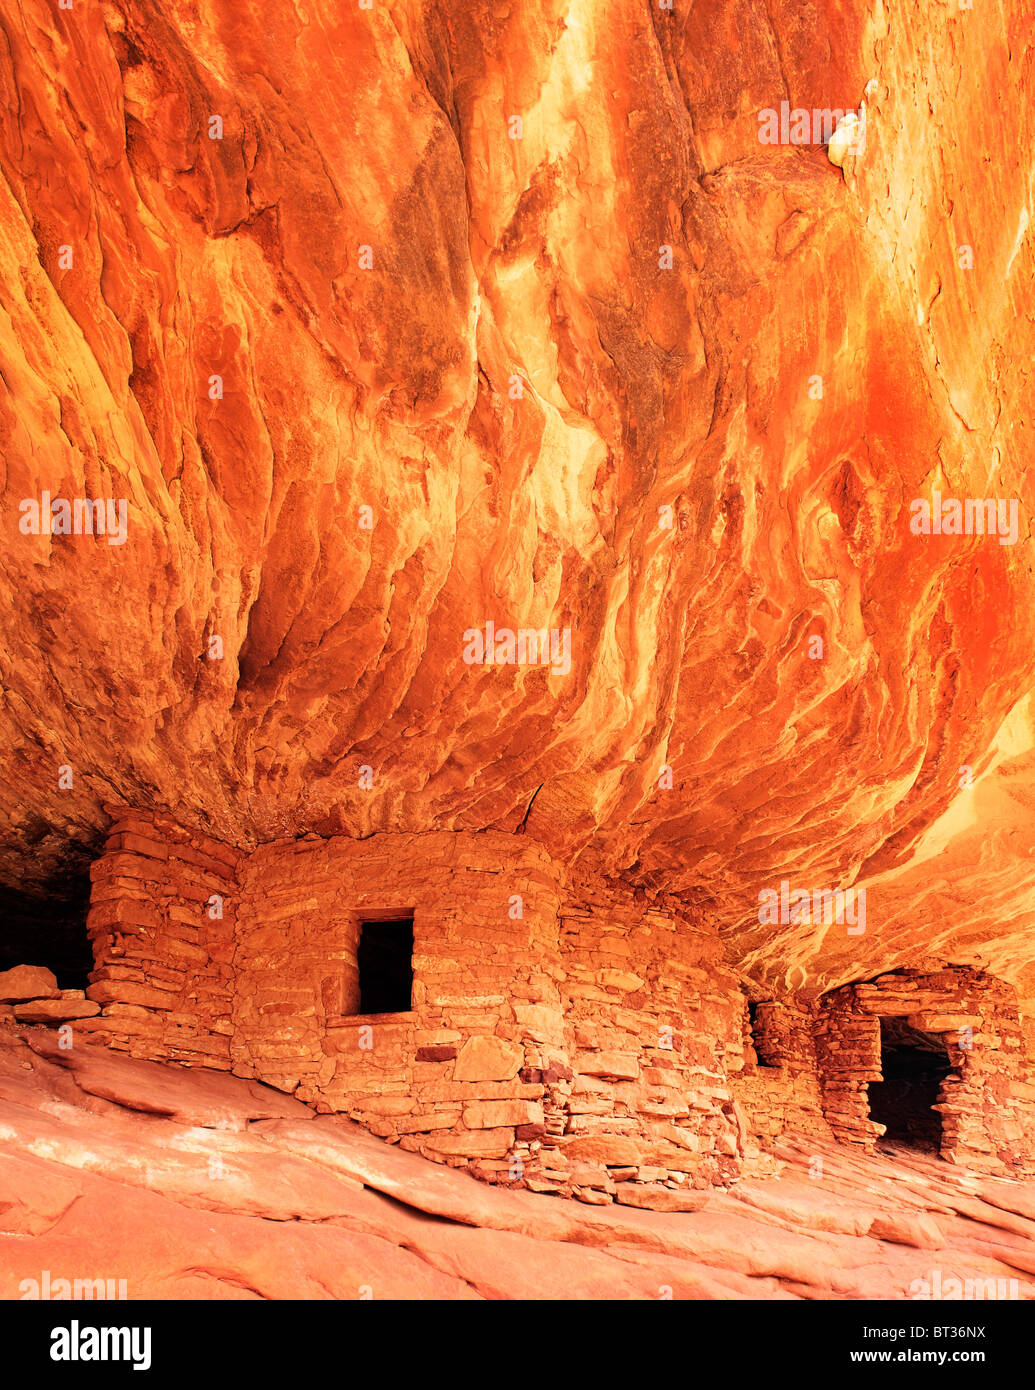 'Flaming Ceiling ruin', ancient Anasazi ruins at Cedar Mesa, Utah, USA - Stock Image